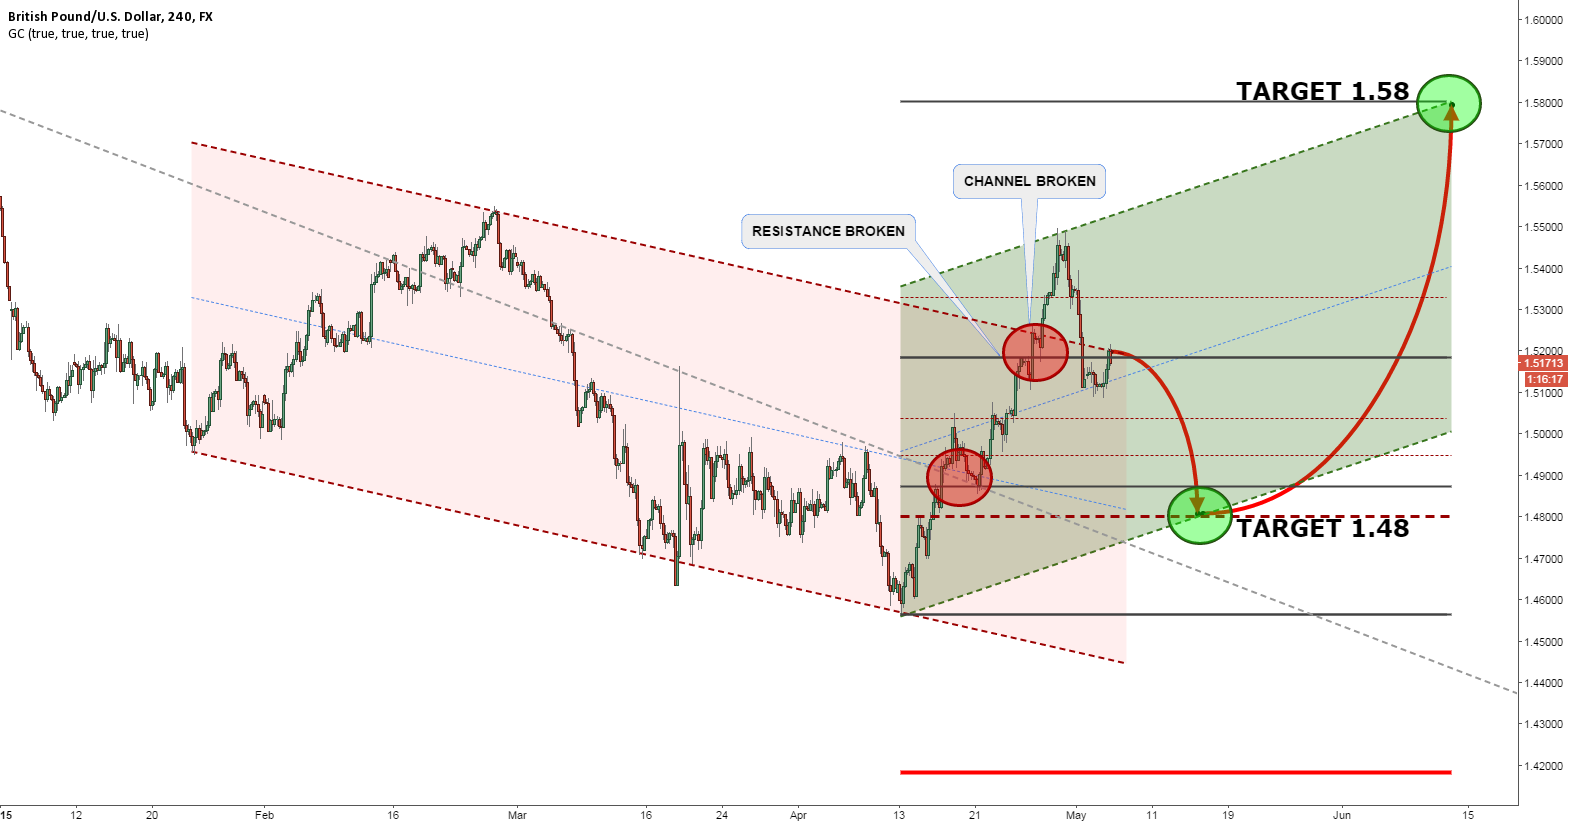 GBPUSD DOWN THEN UP